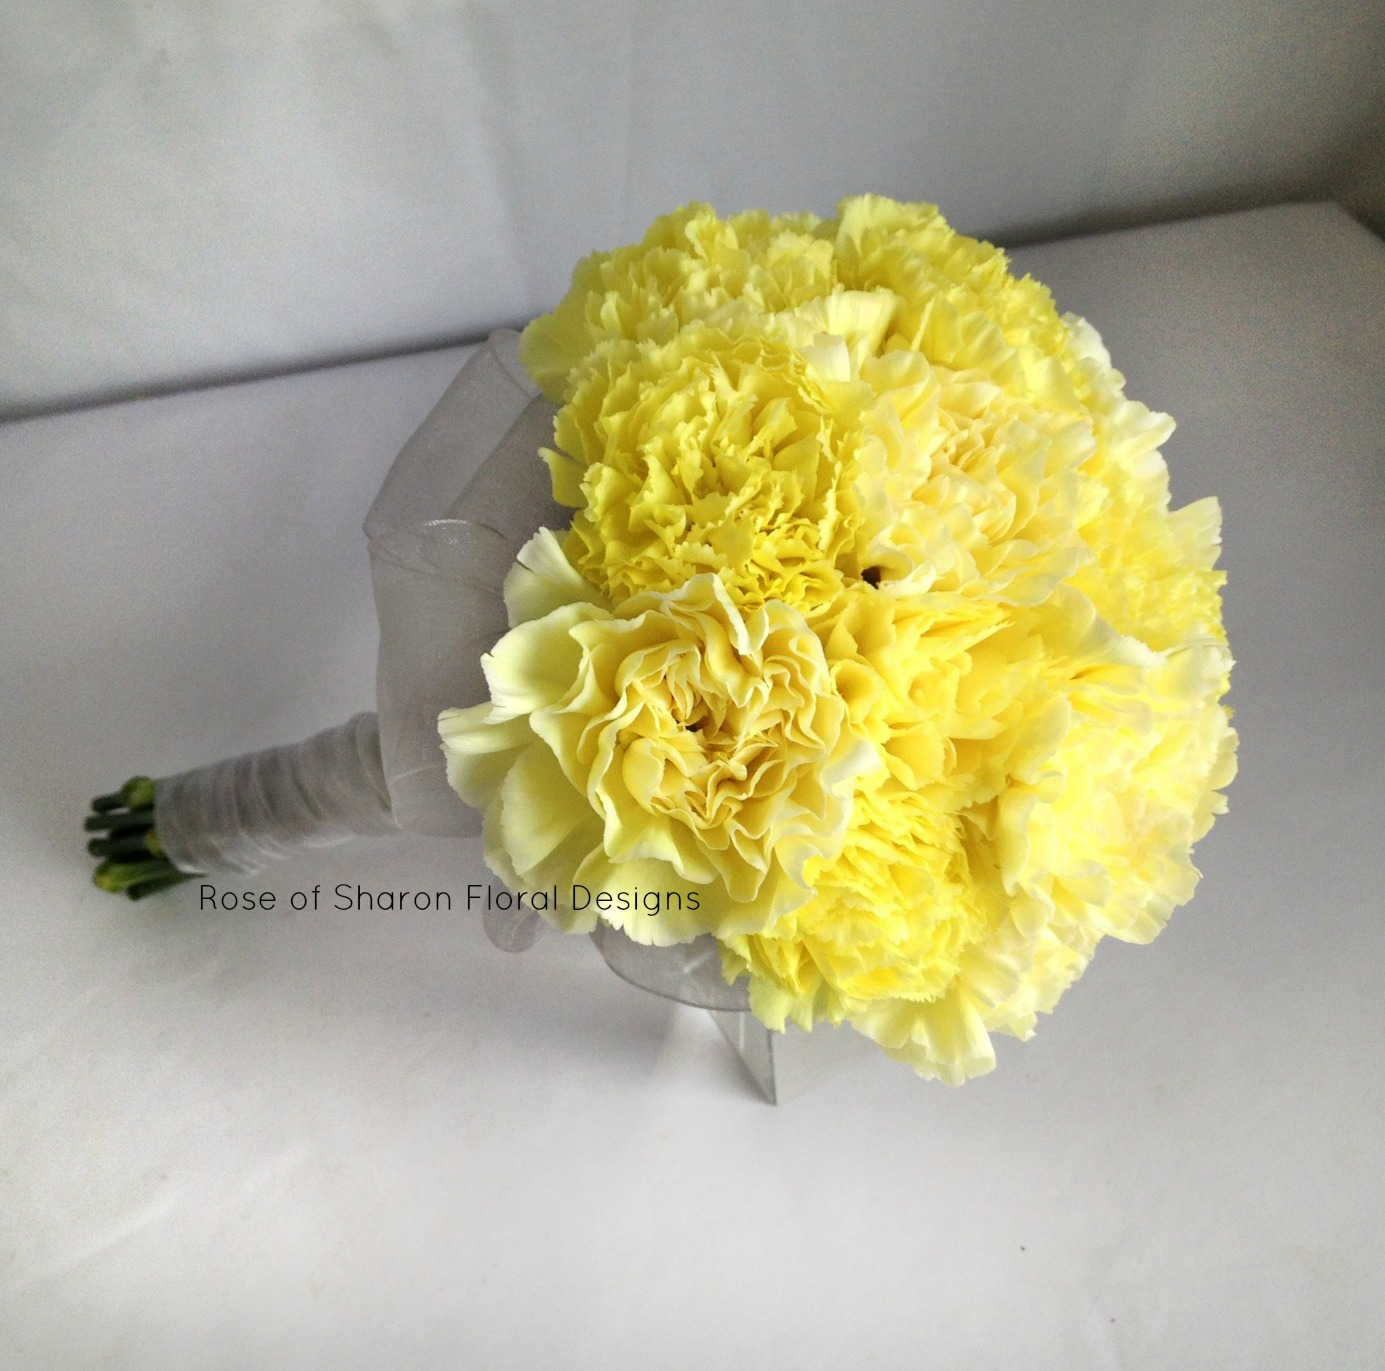 Yellow carnation bouquet. Rose of Sharon Floral Designs